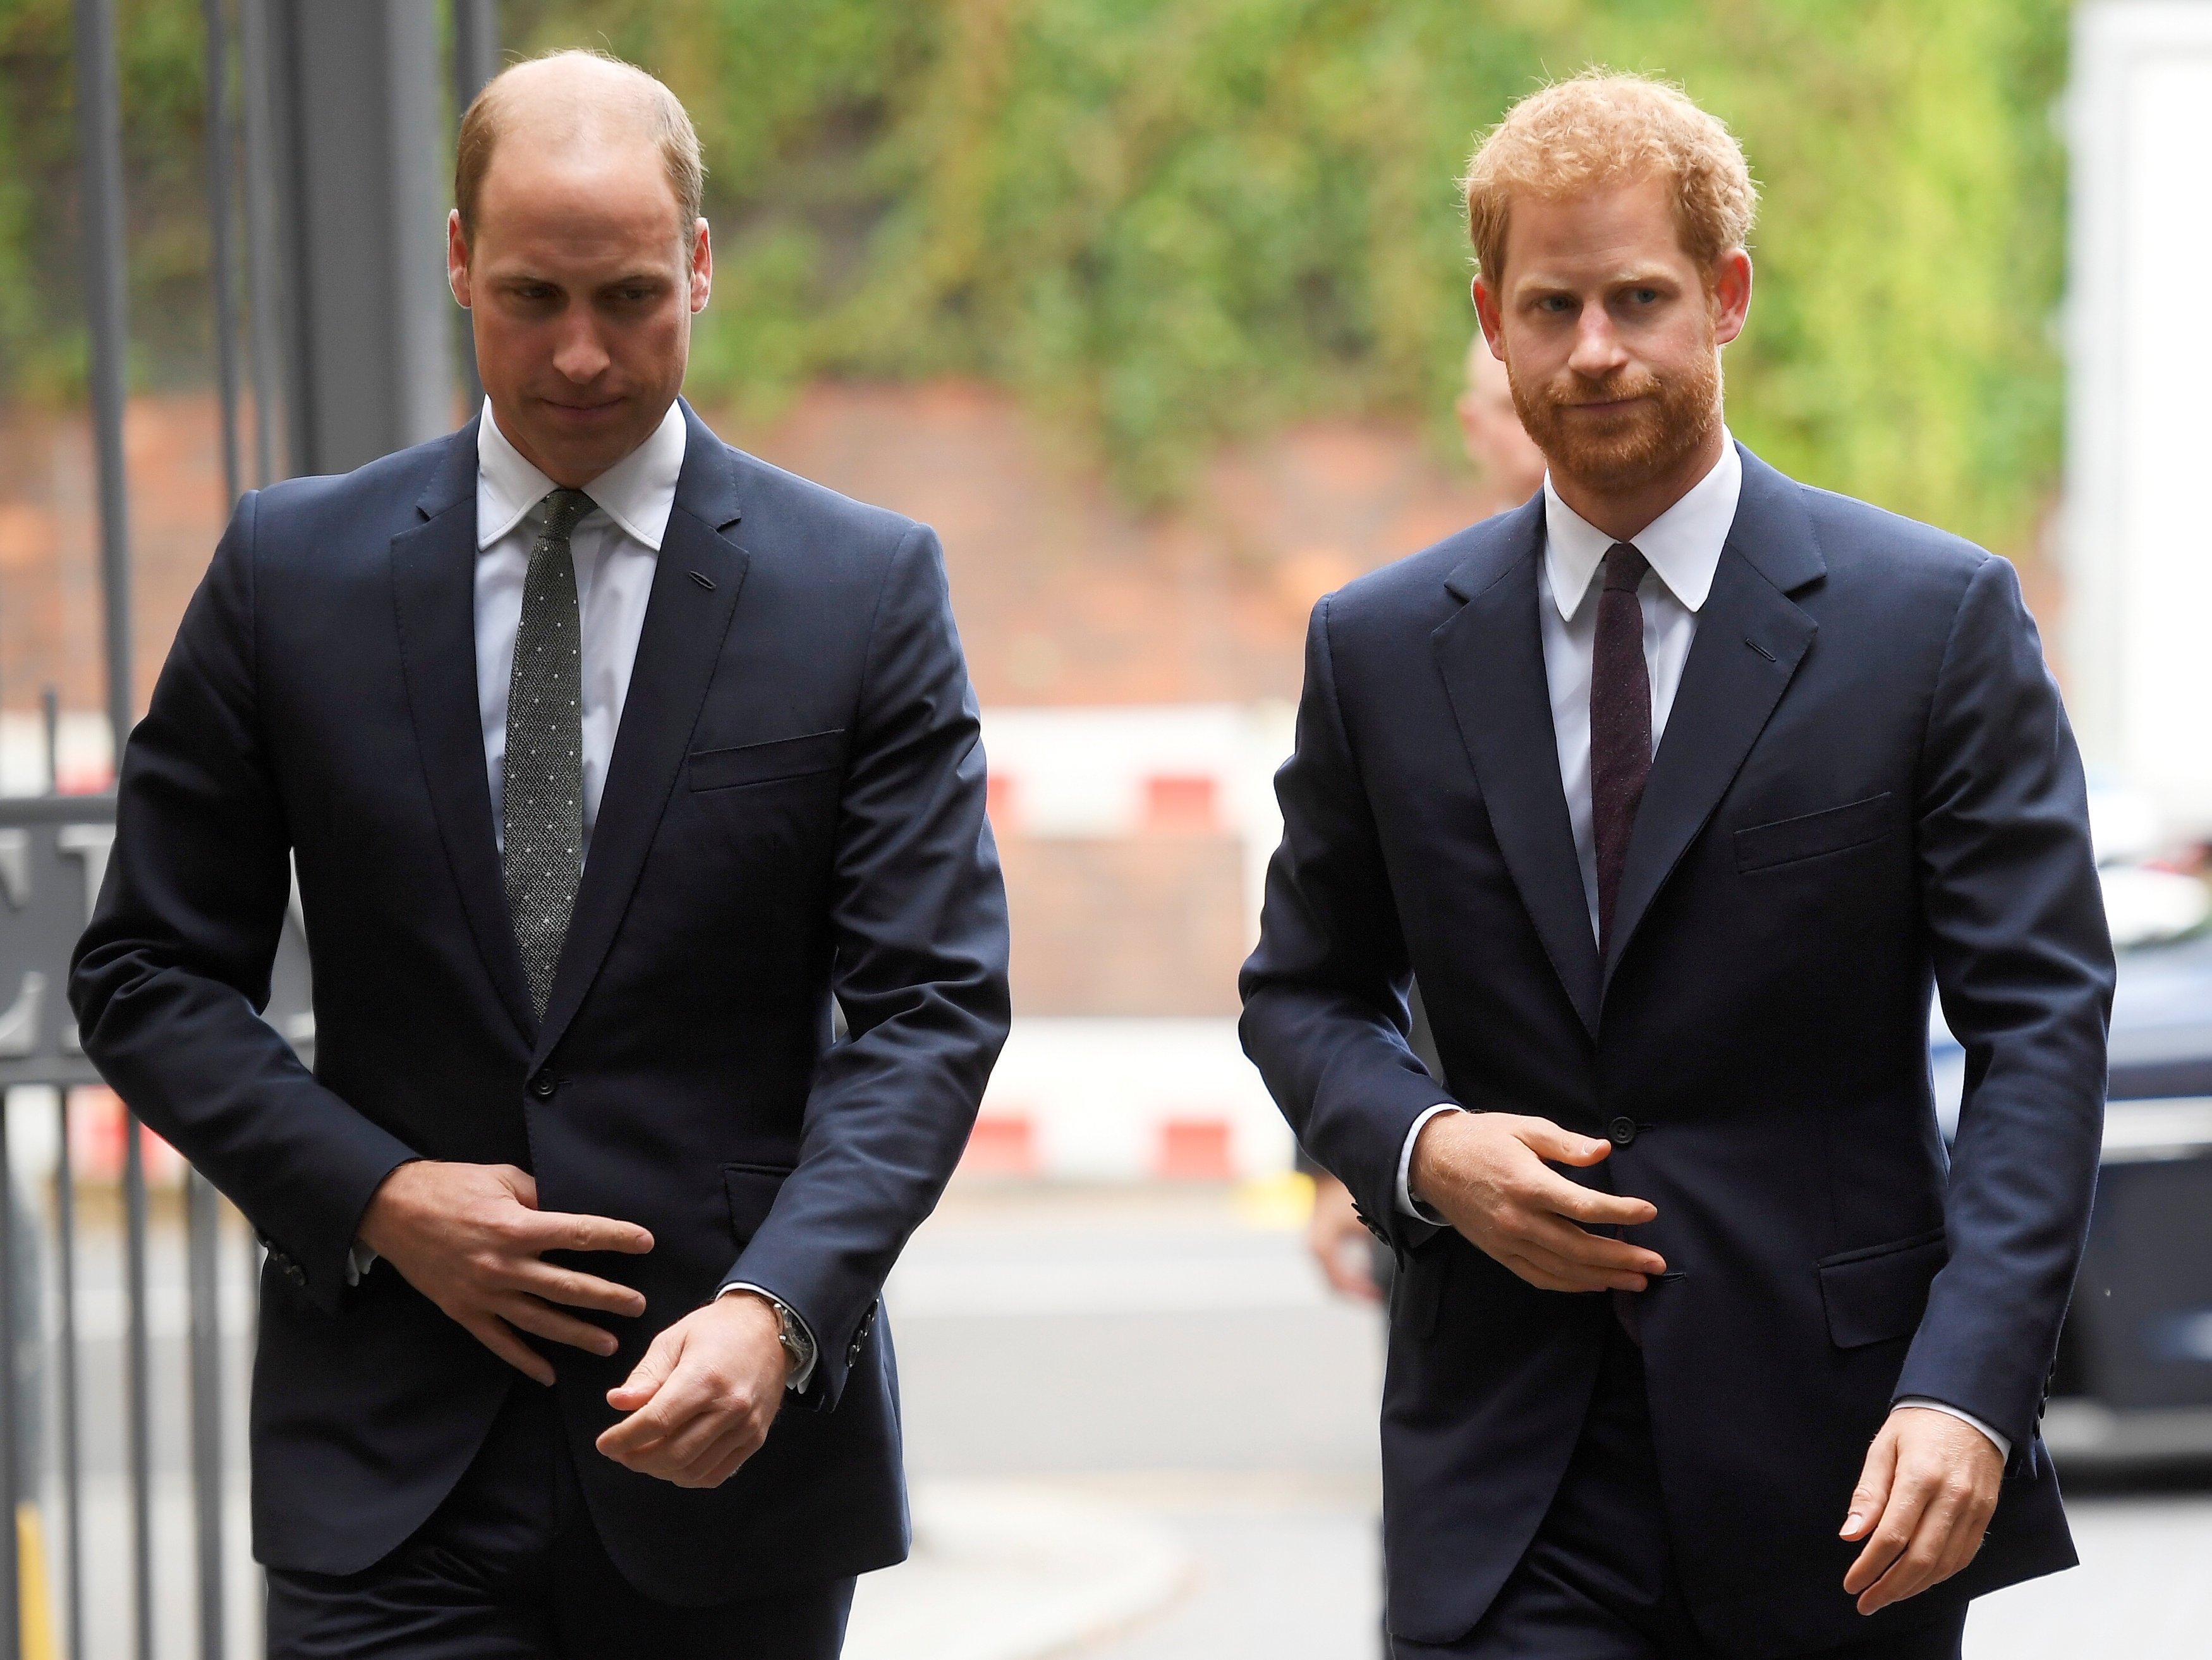 Prince William and Prince Harry arrive during a visit to the newly established Royal Foundation Support4Grenfell community hub on September 5, 2017 in London, England | Photo: Getty Images